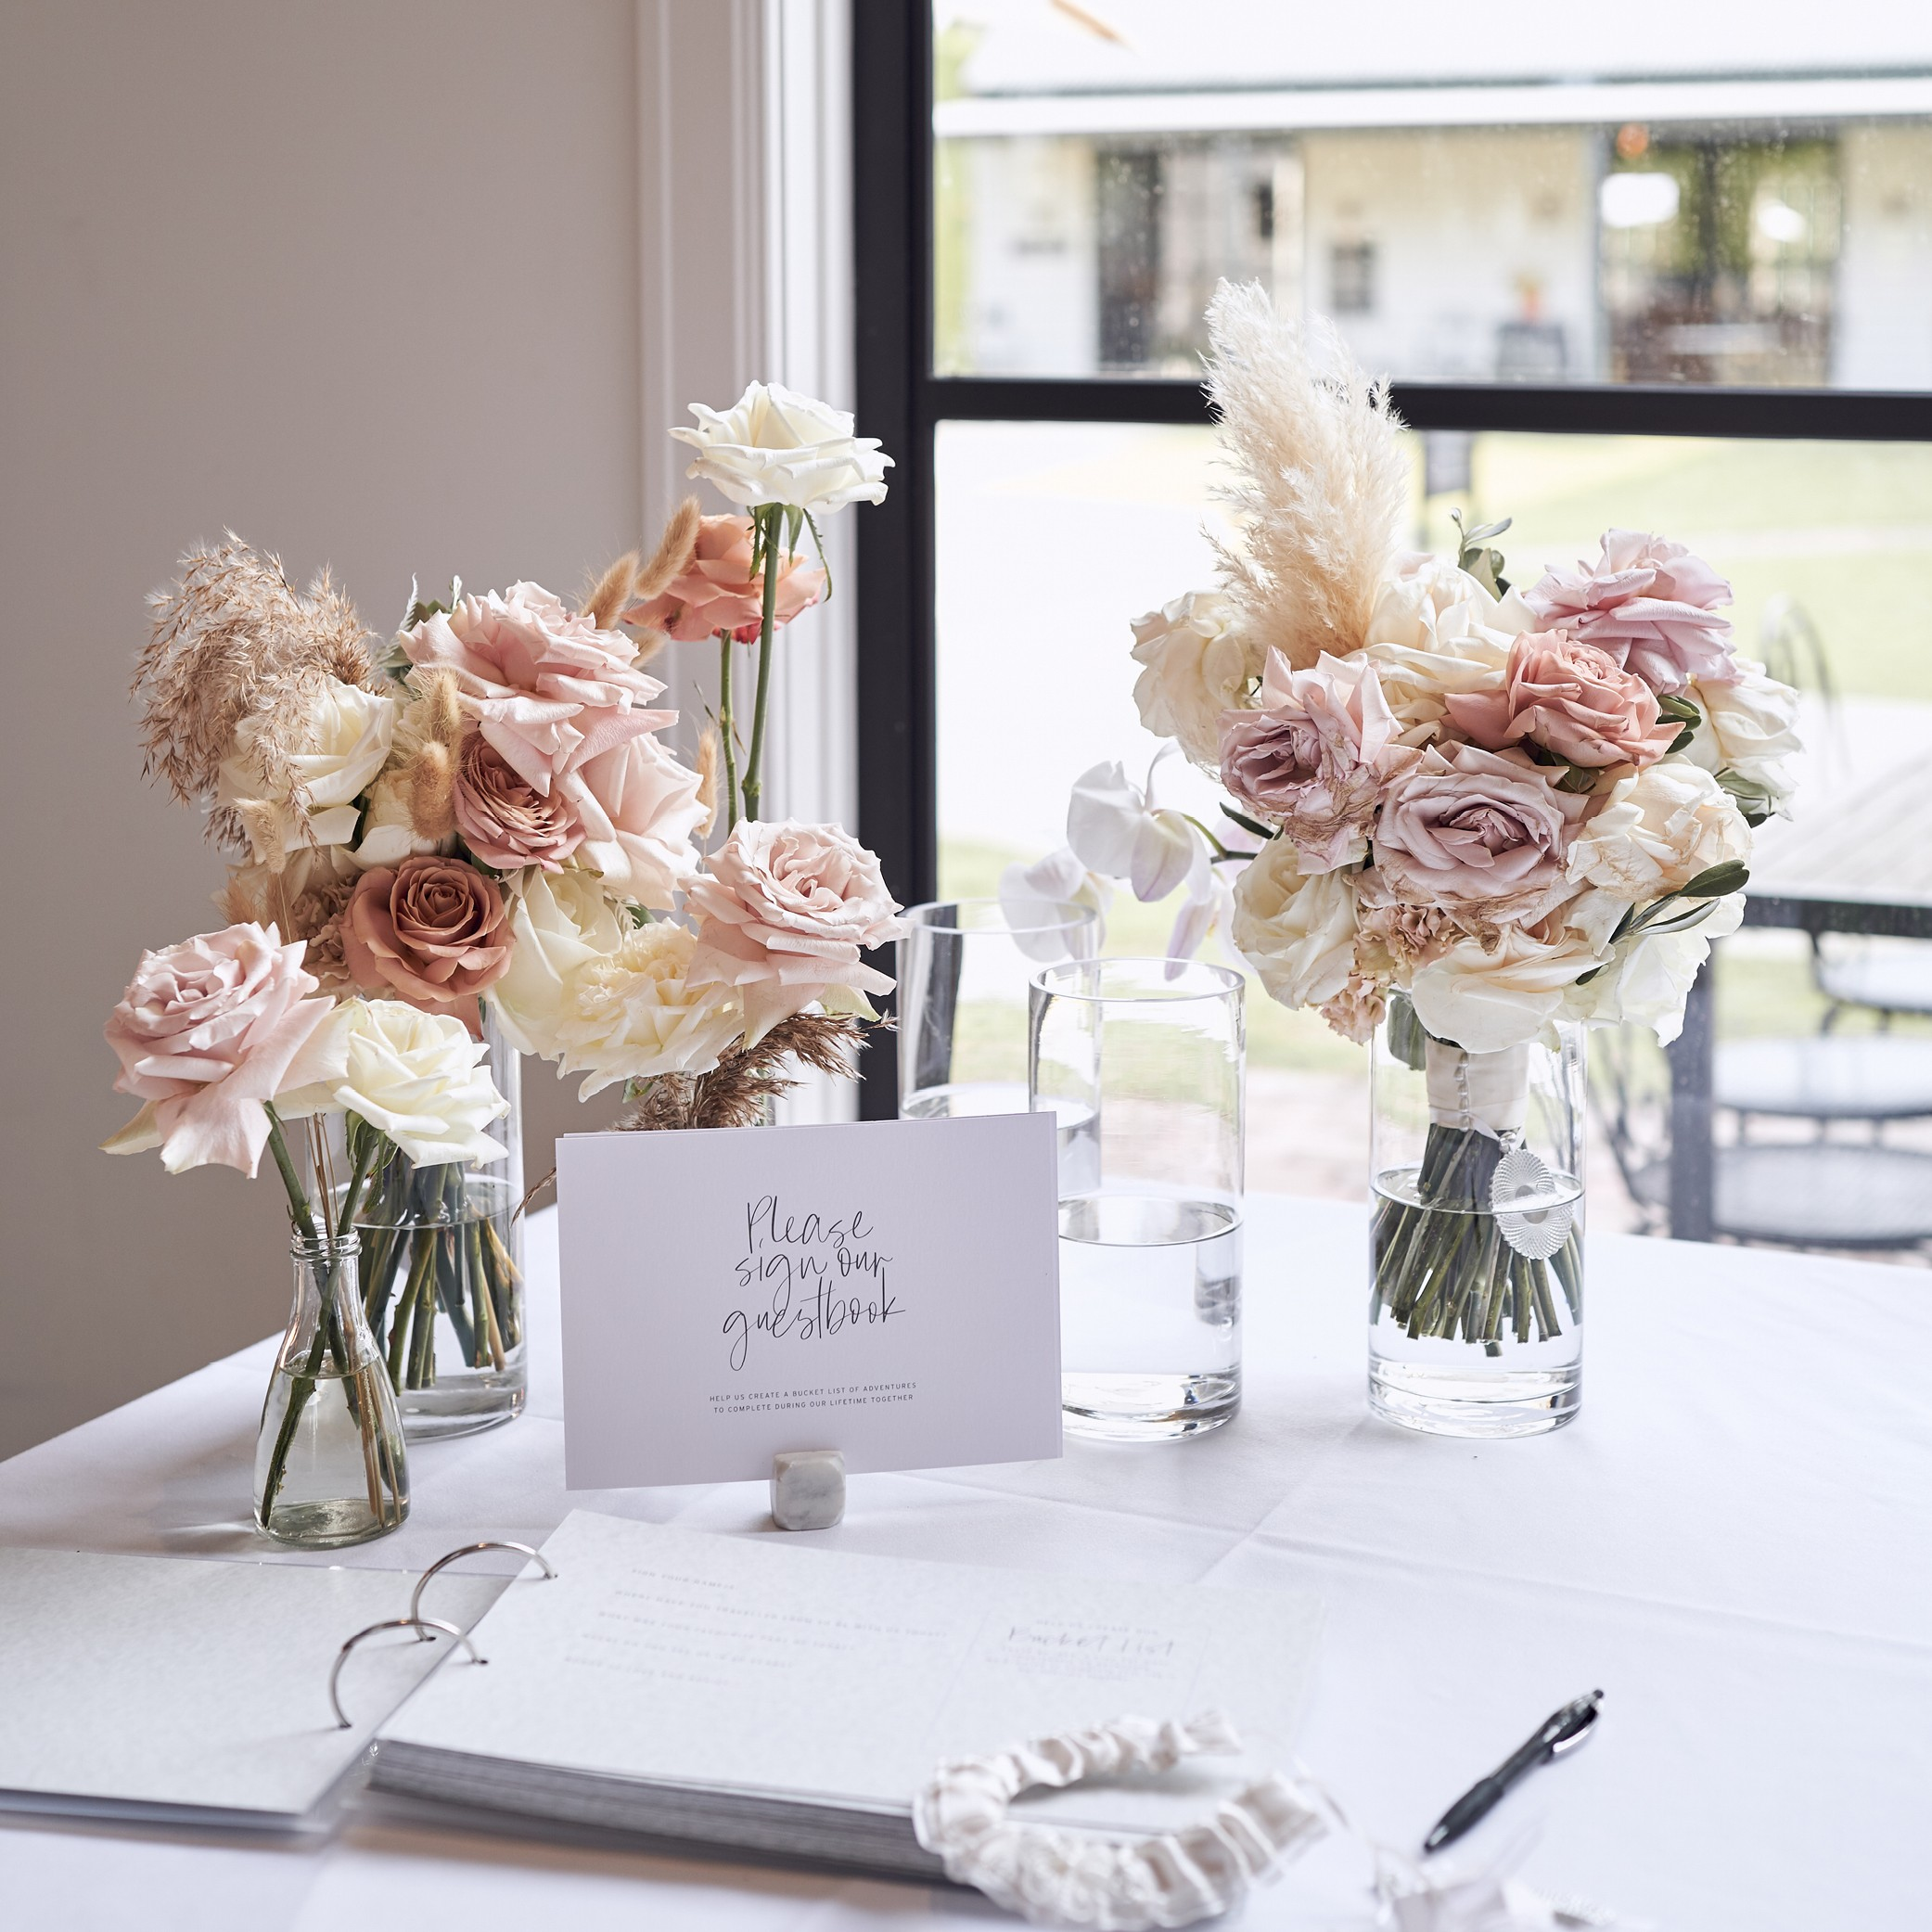 - GUEST BOOK SIGNAGE